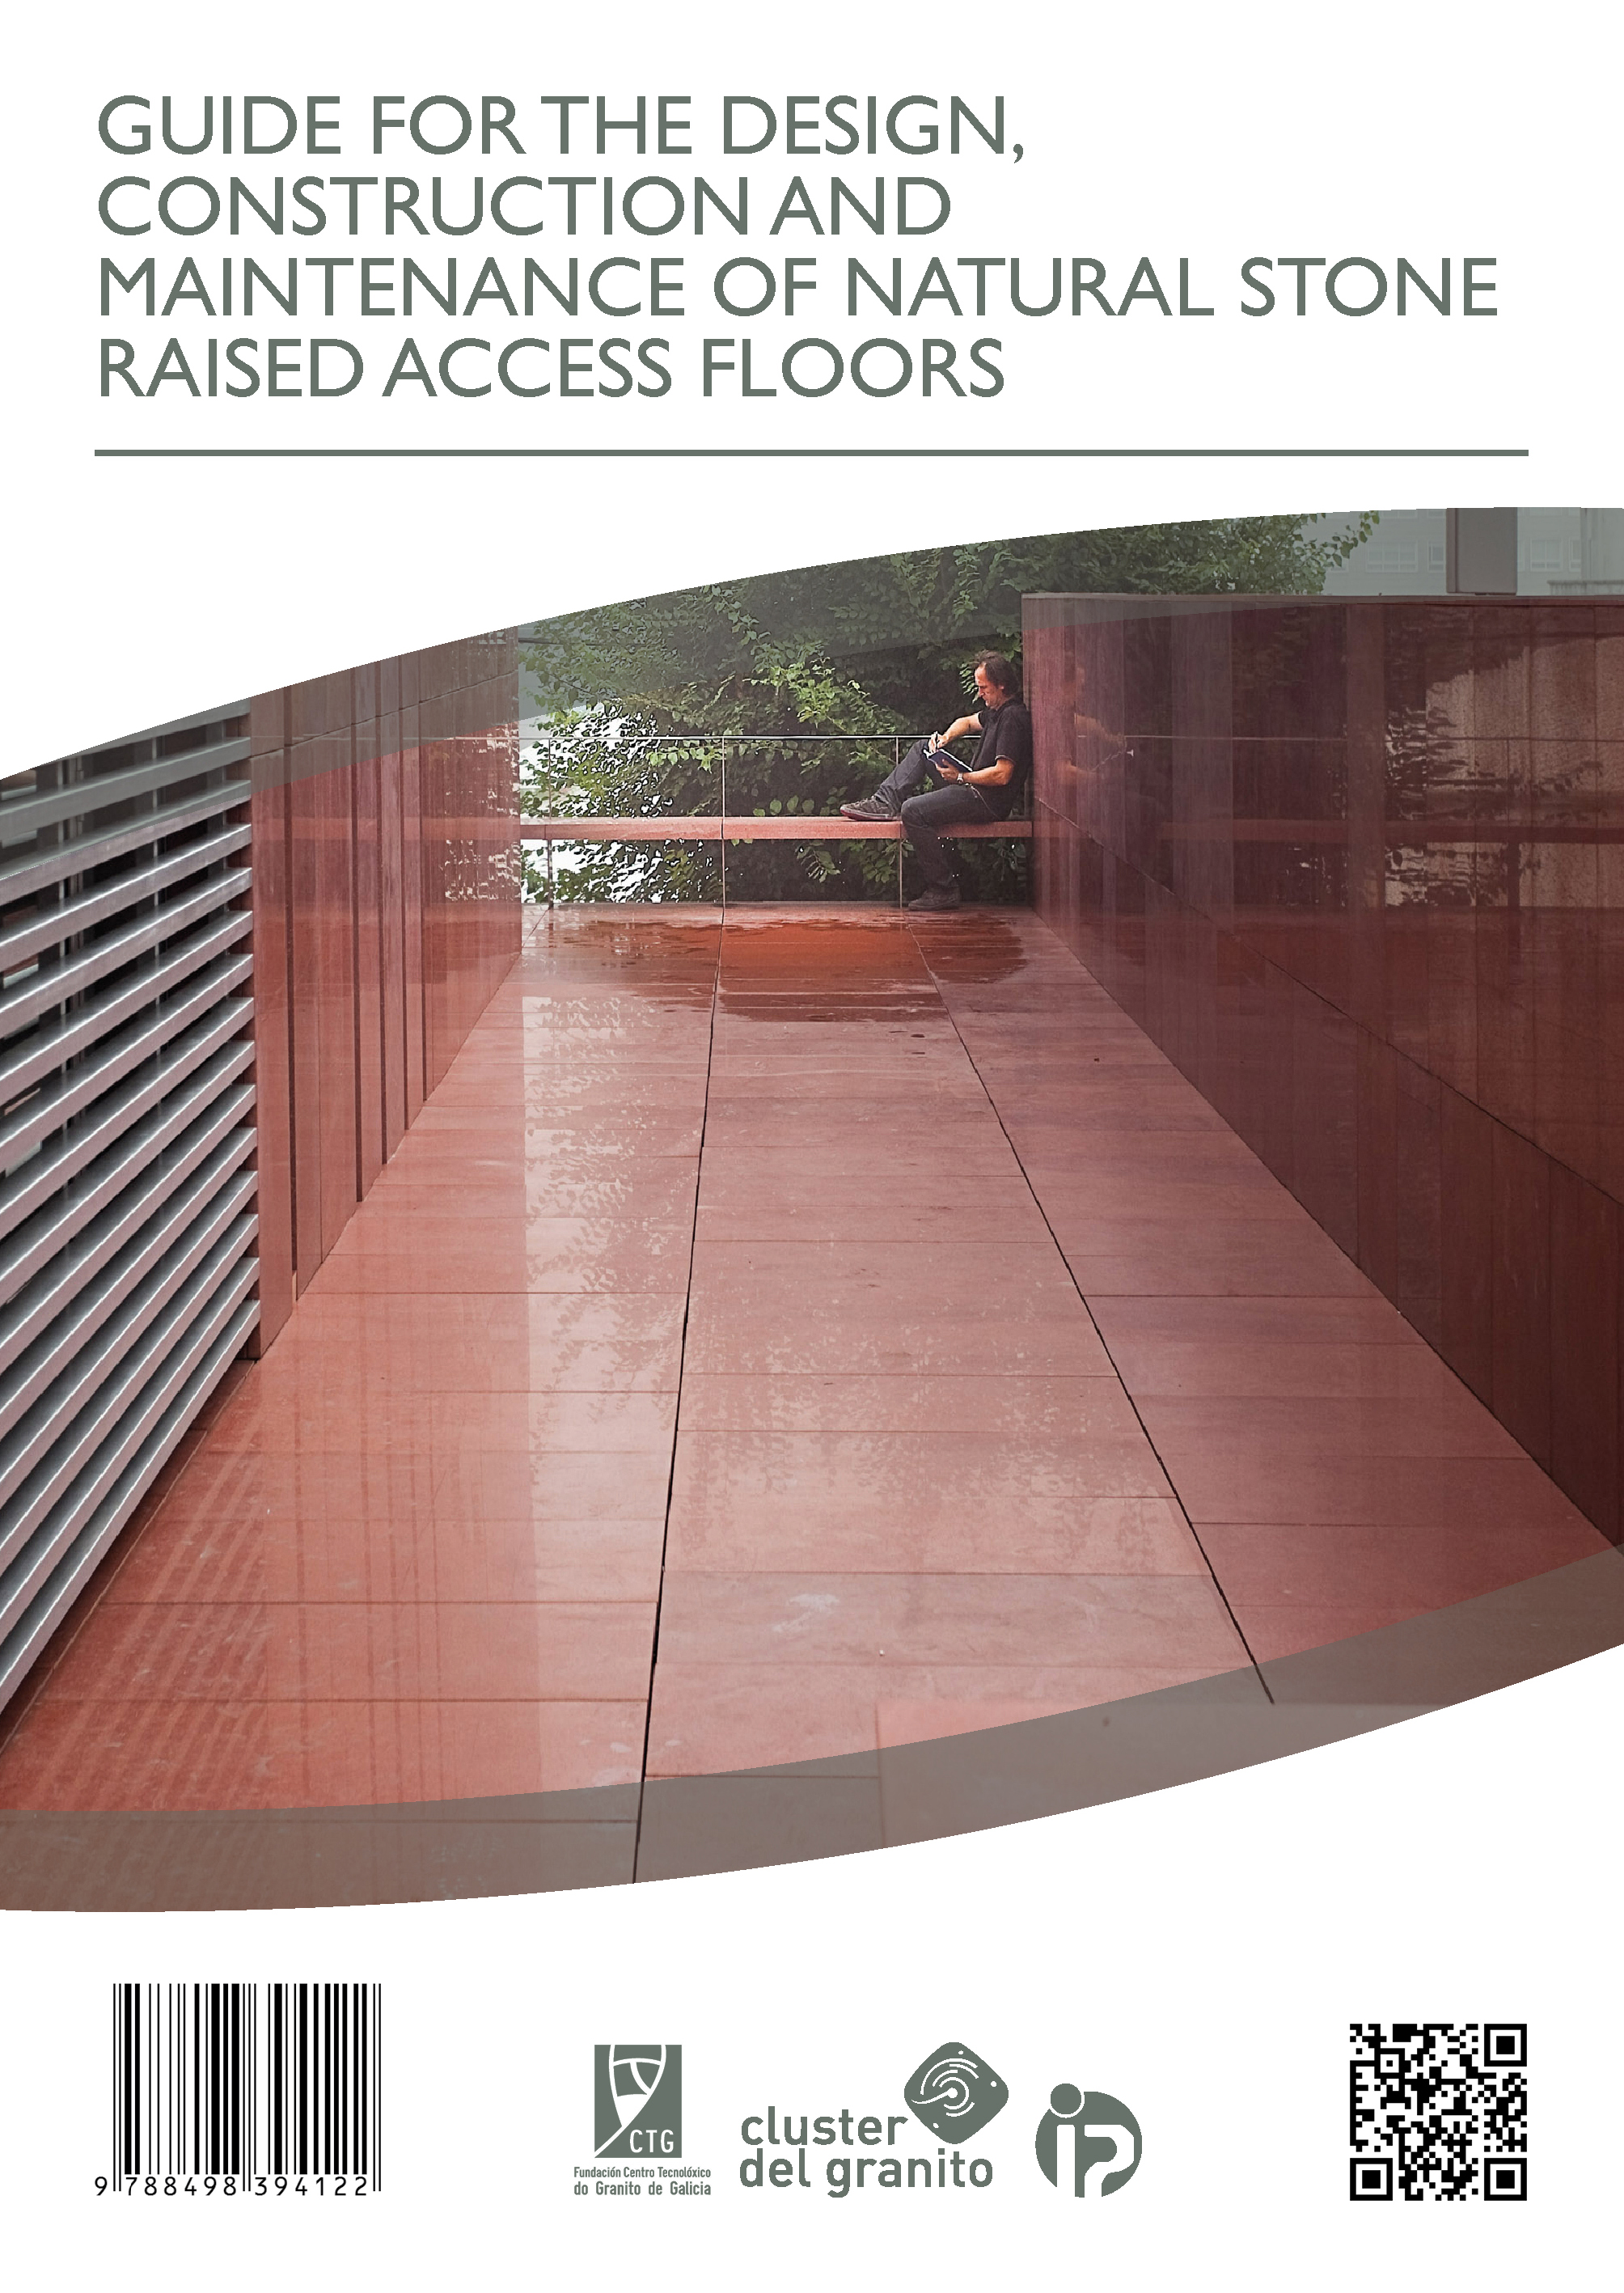 GUIDE FOR THE DESIGN, CONSTRUCTION AND MAINTENANCE OF NATURAL STONE RAISED ACCESS FLOORS